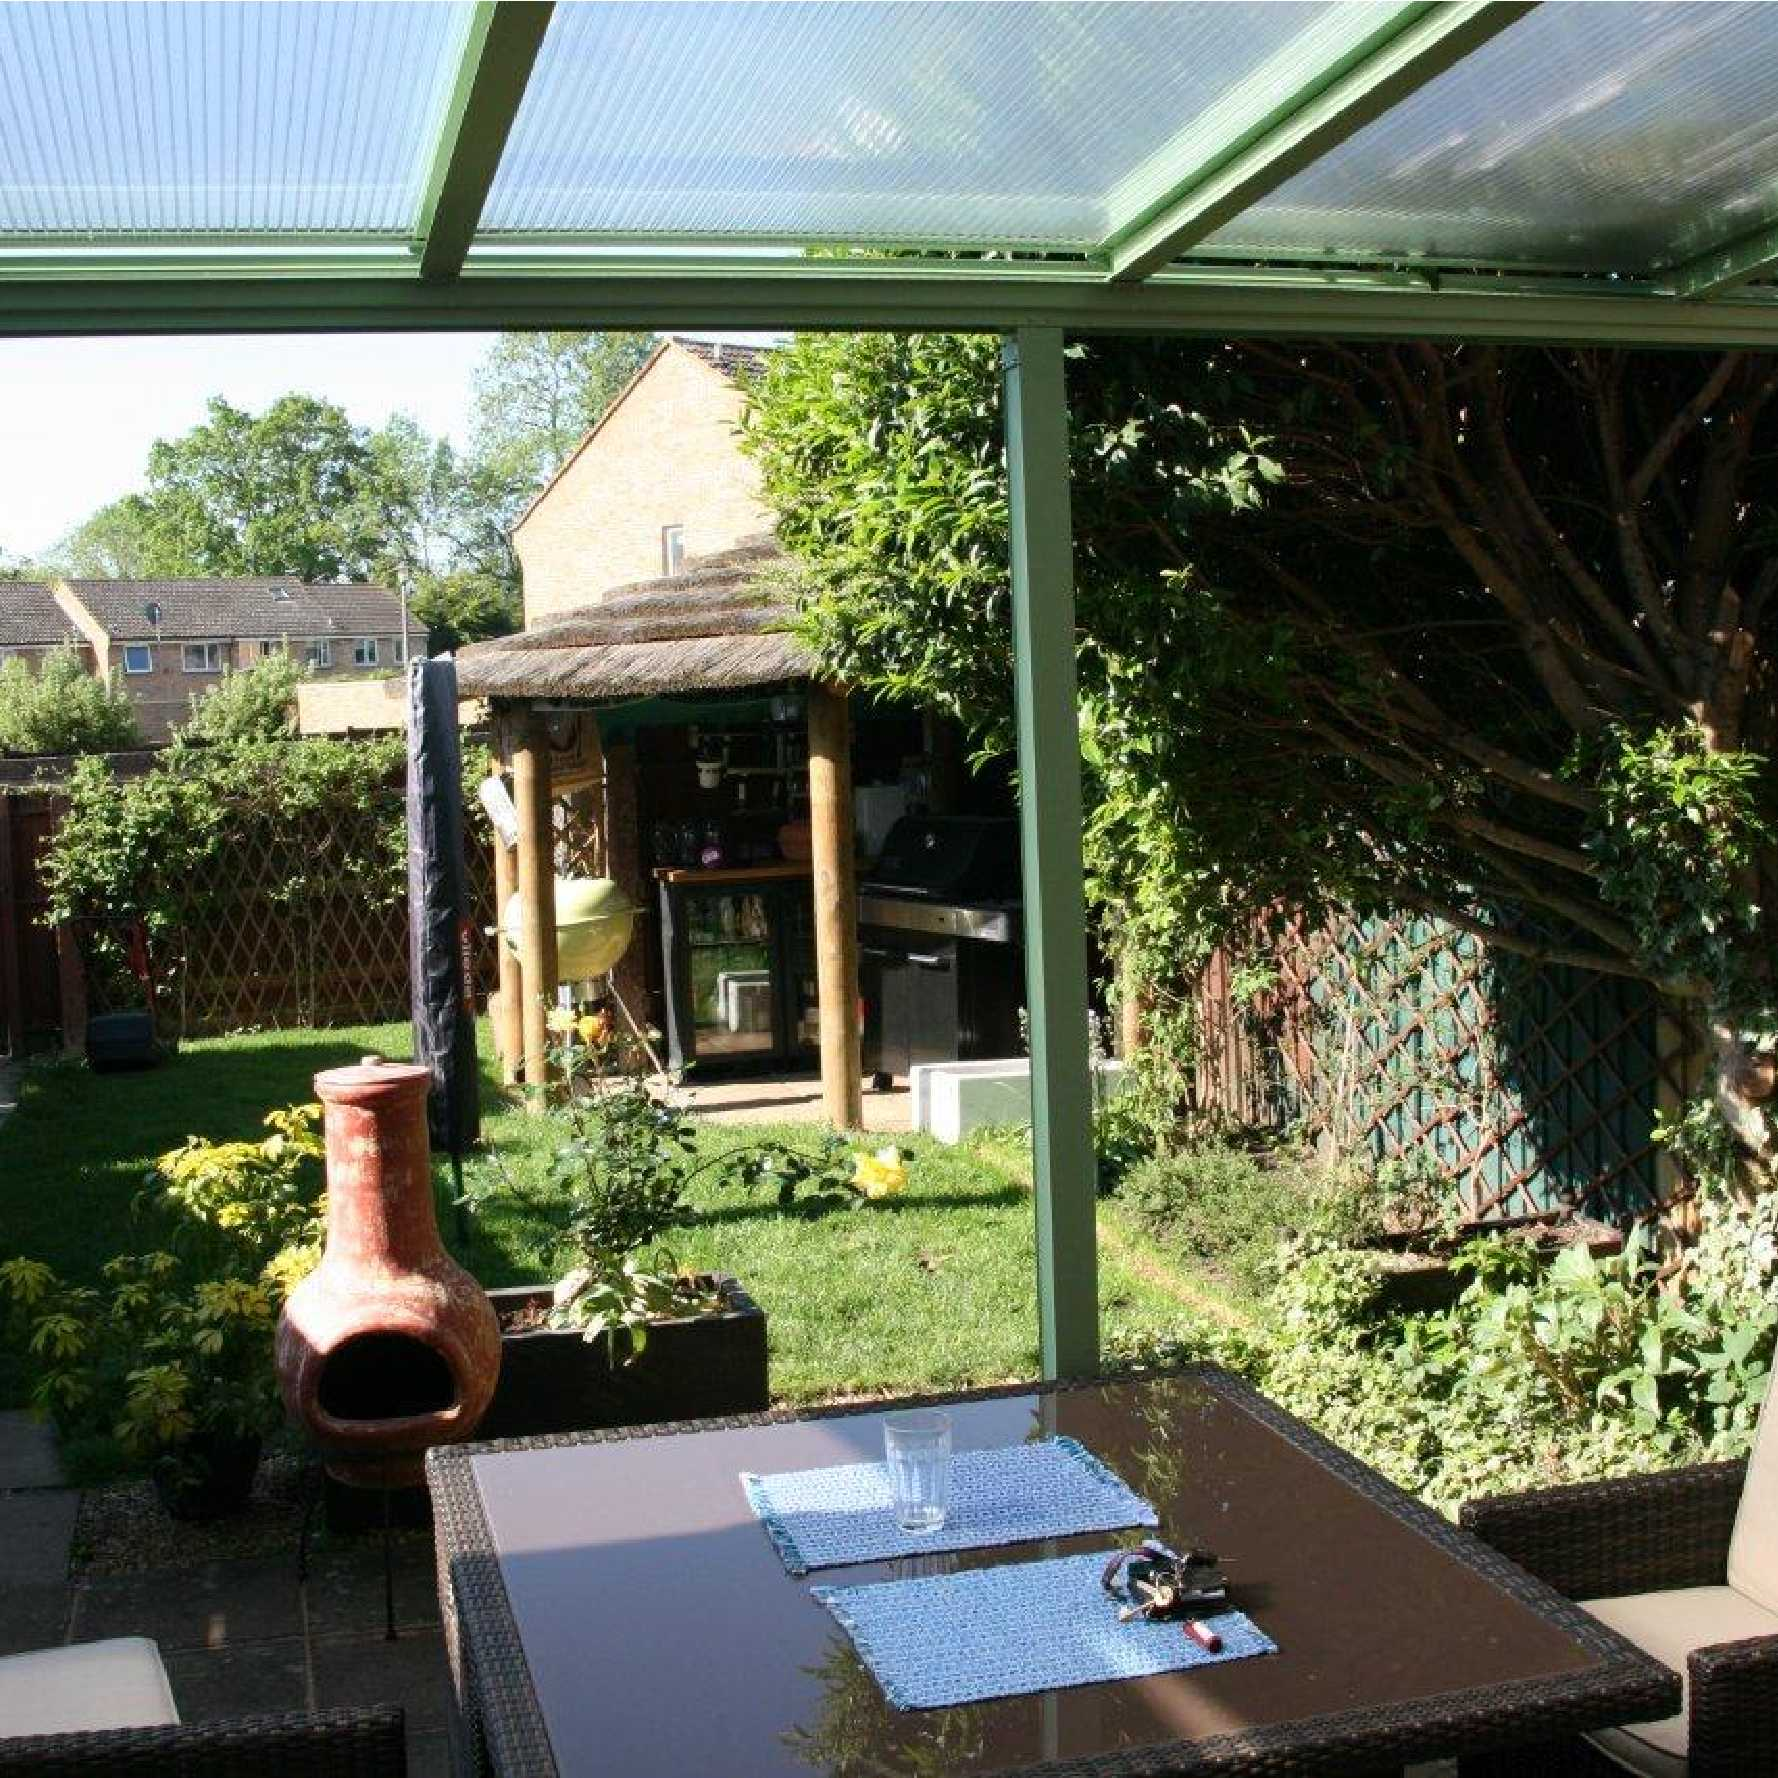 Affordable Omega Smart Lean-To Canopy with 16mm Polycarbonate Glazing - 6.0m (W) x 3.0m (P), (3) Supporting Posts